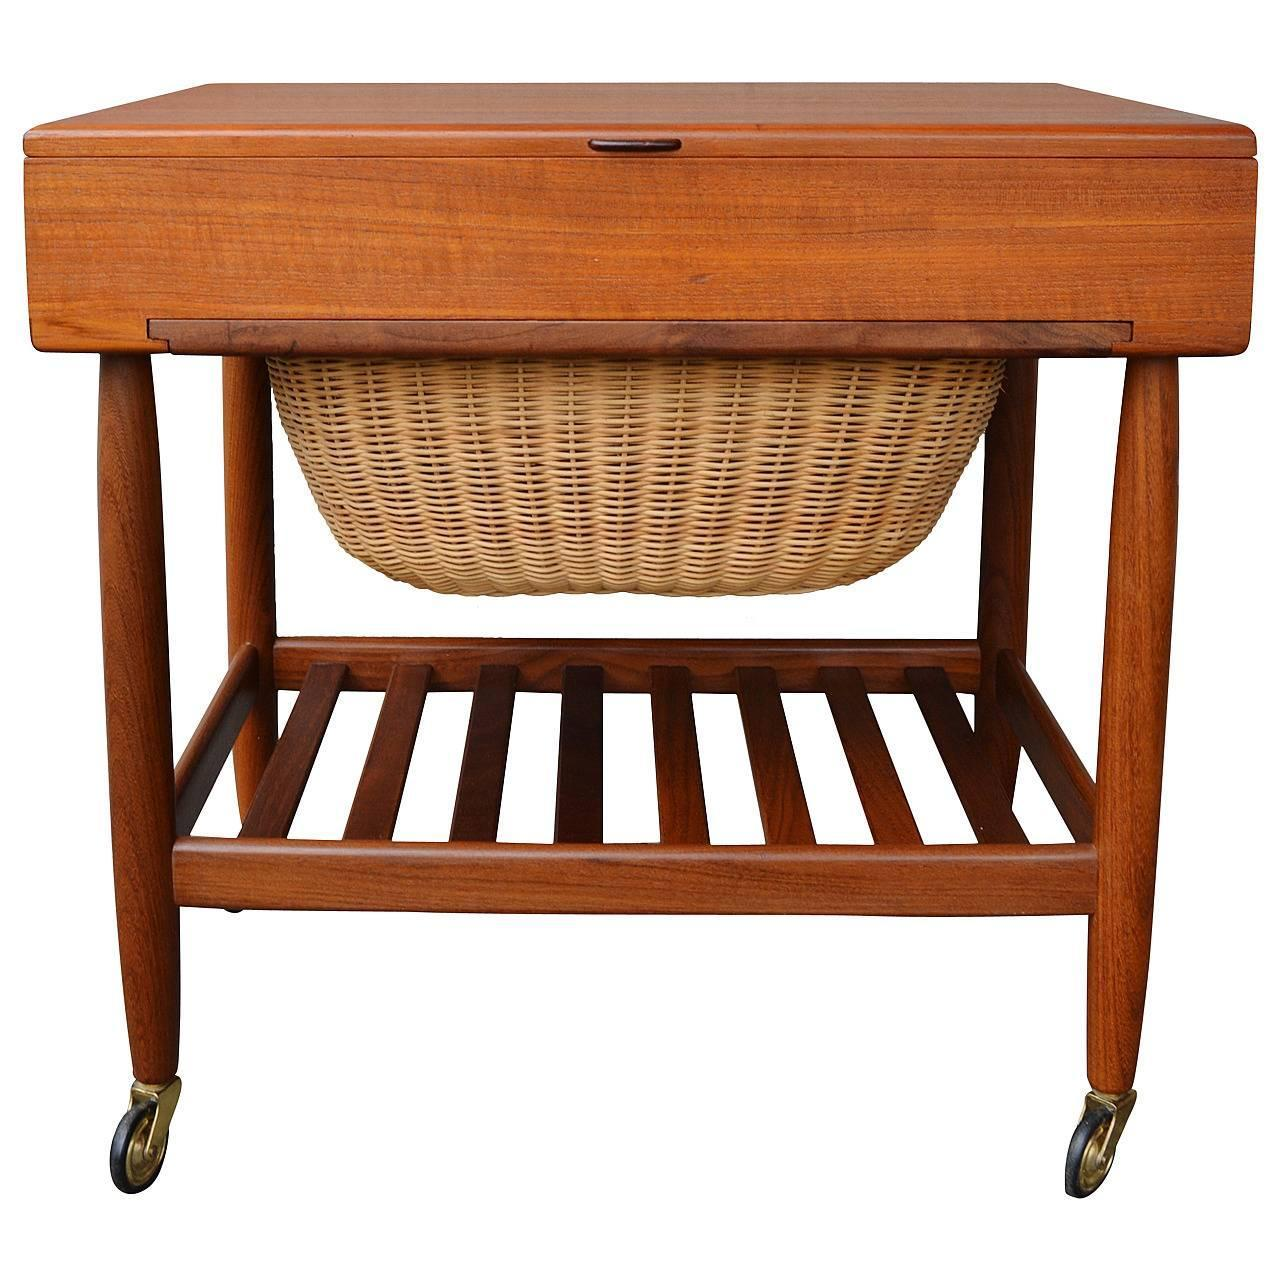 Danish Teak Sewing Table or Cabinet by Vitre at 1stdibs